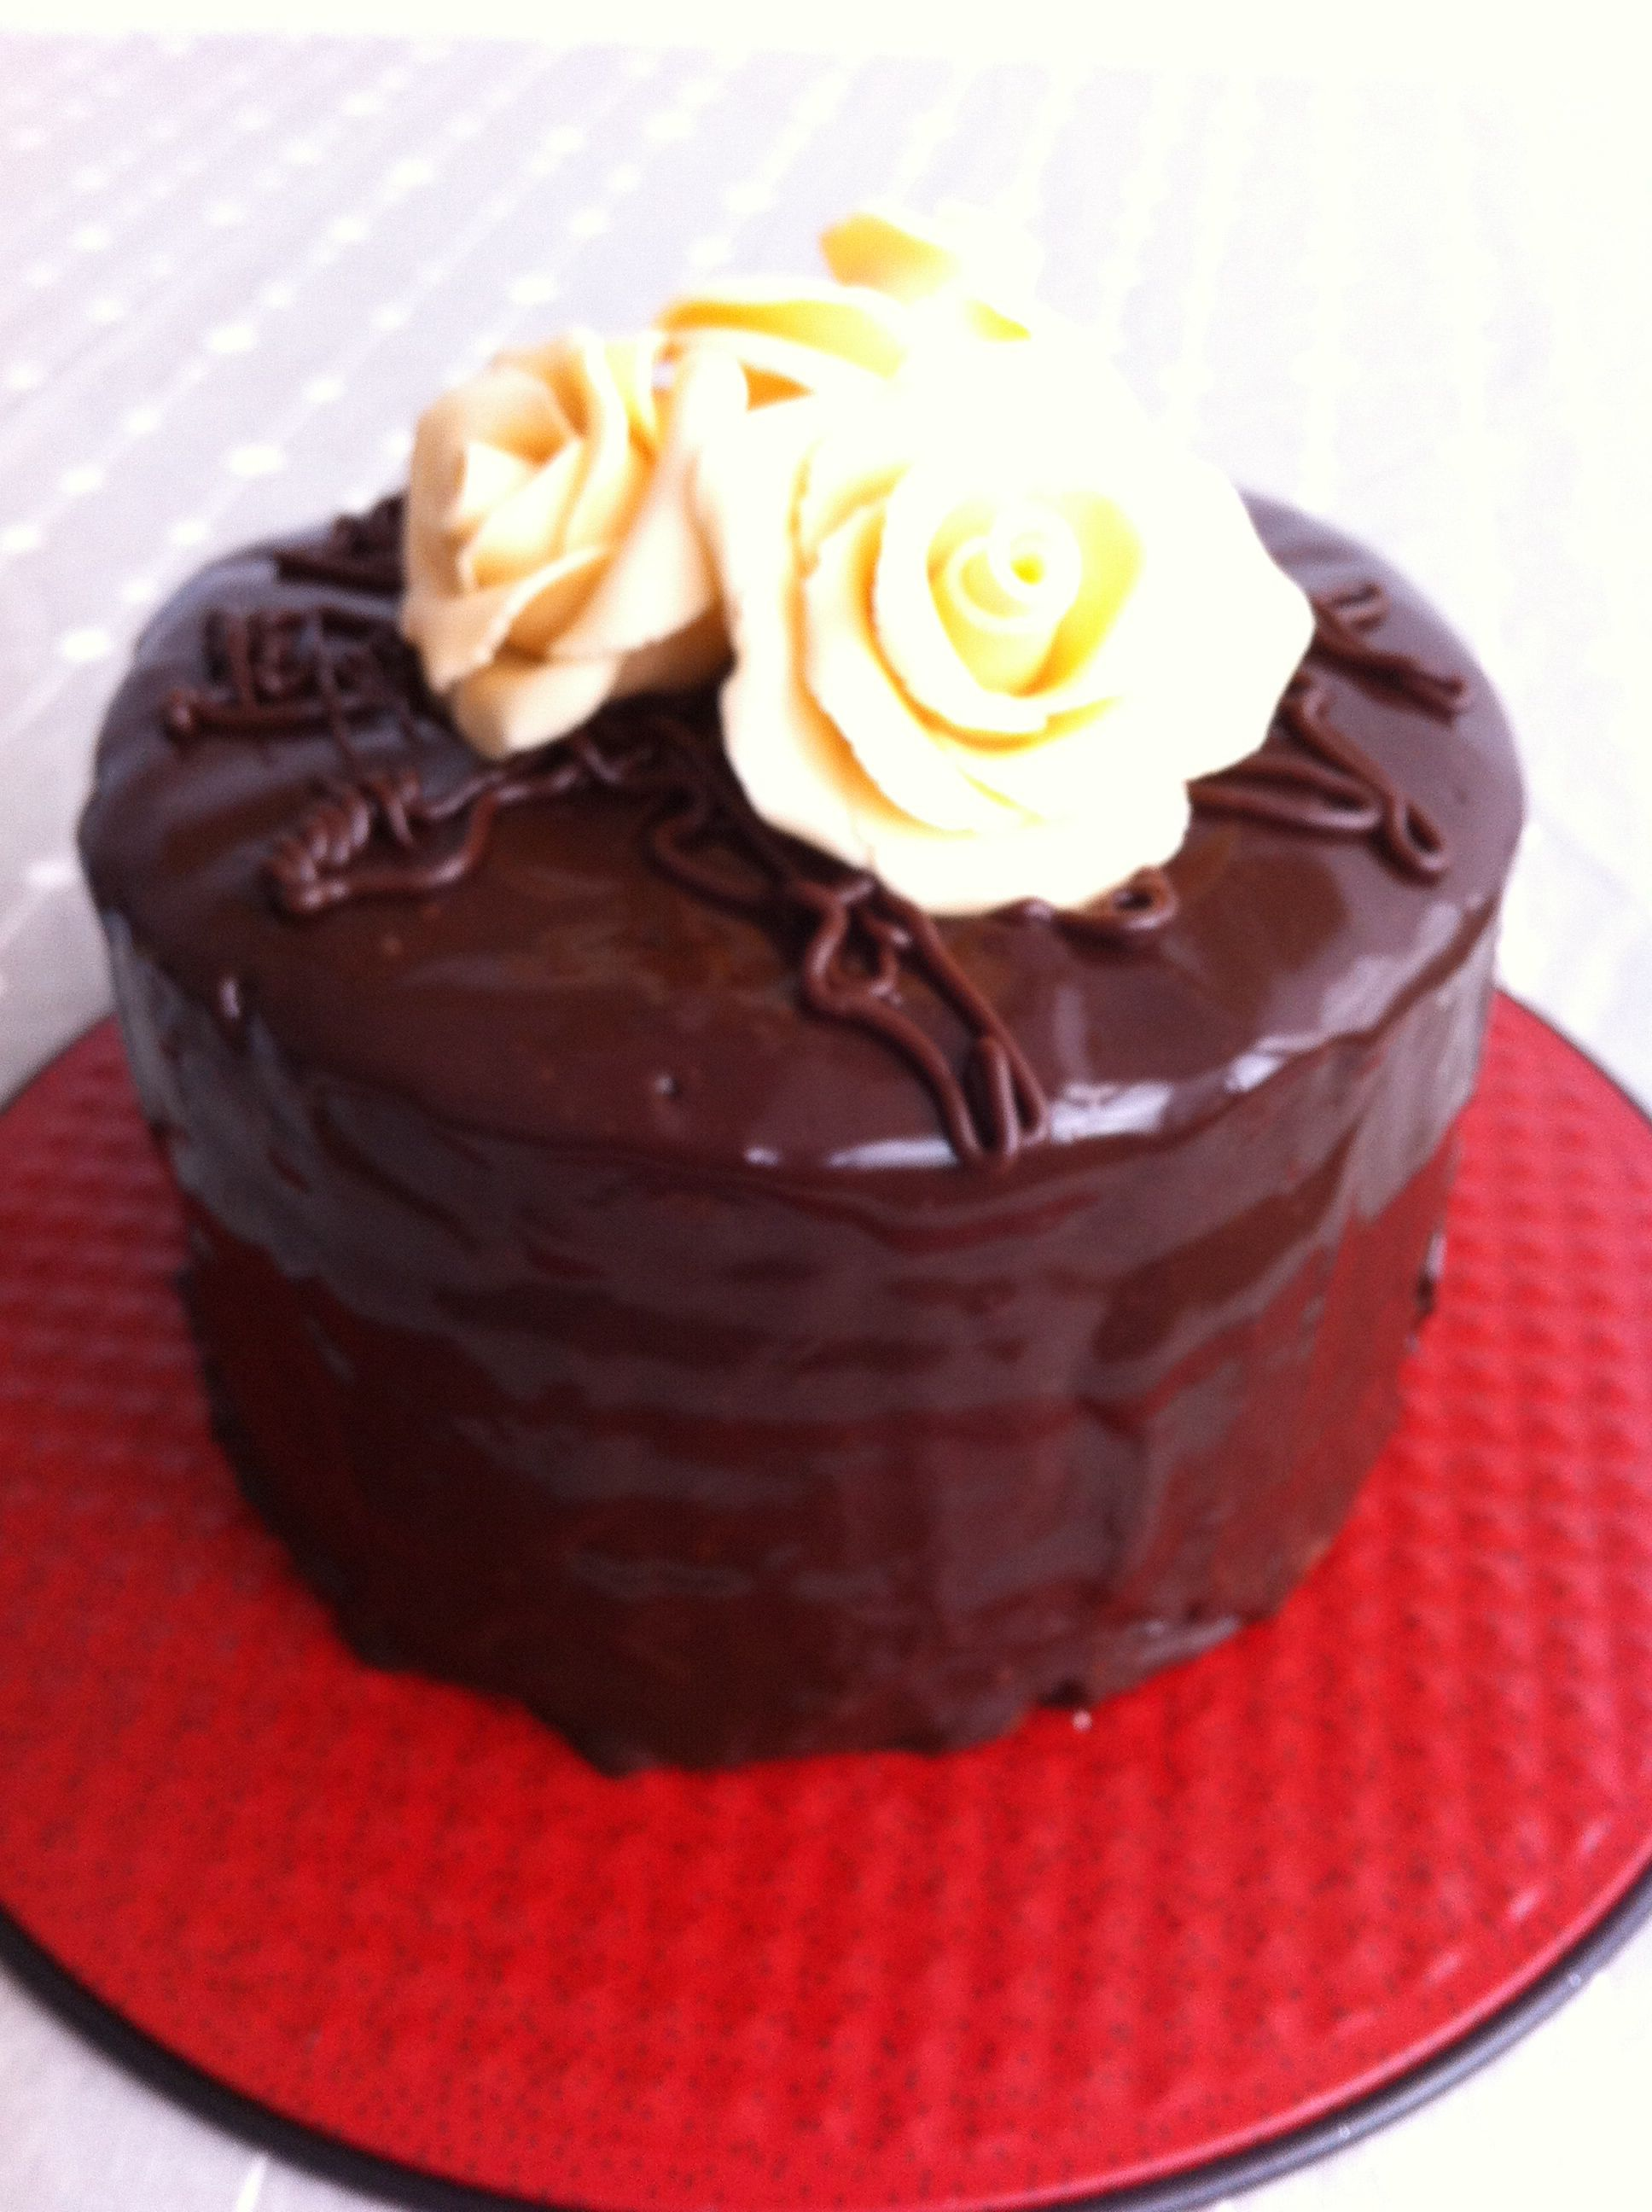 Layer cake de naranja con ganache de chocolate